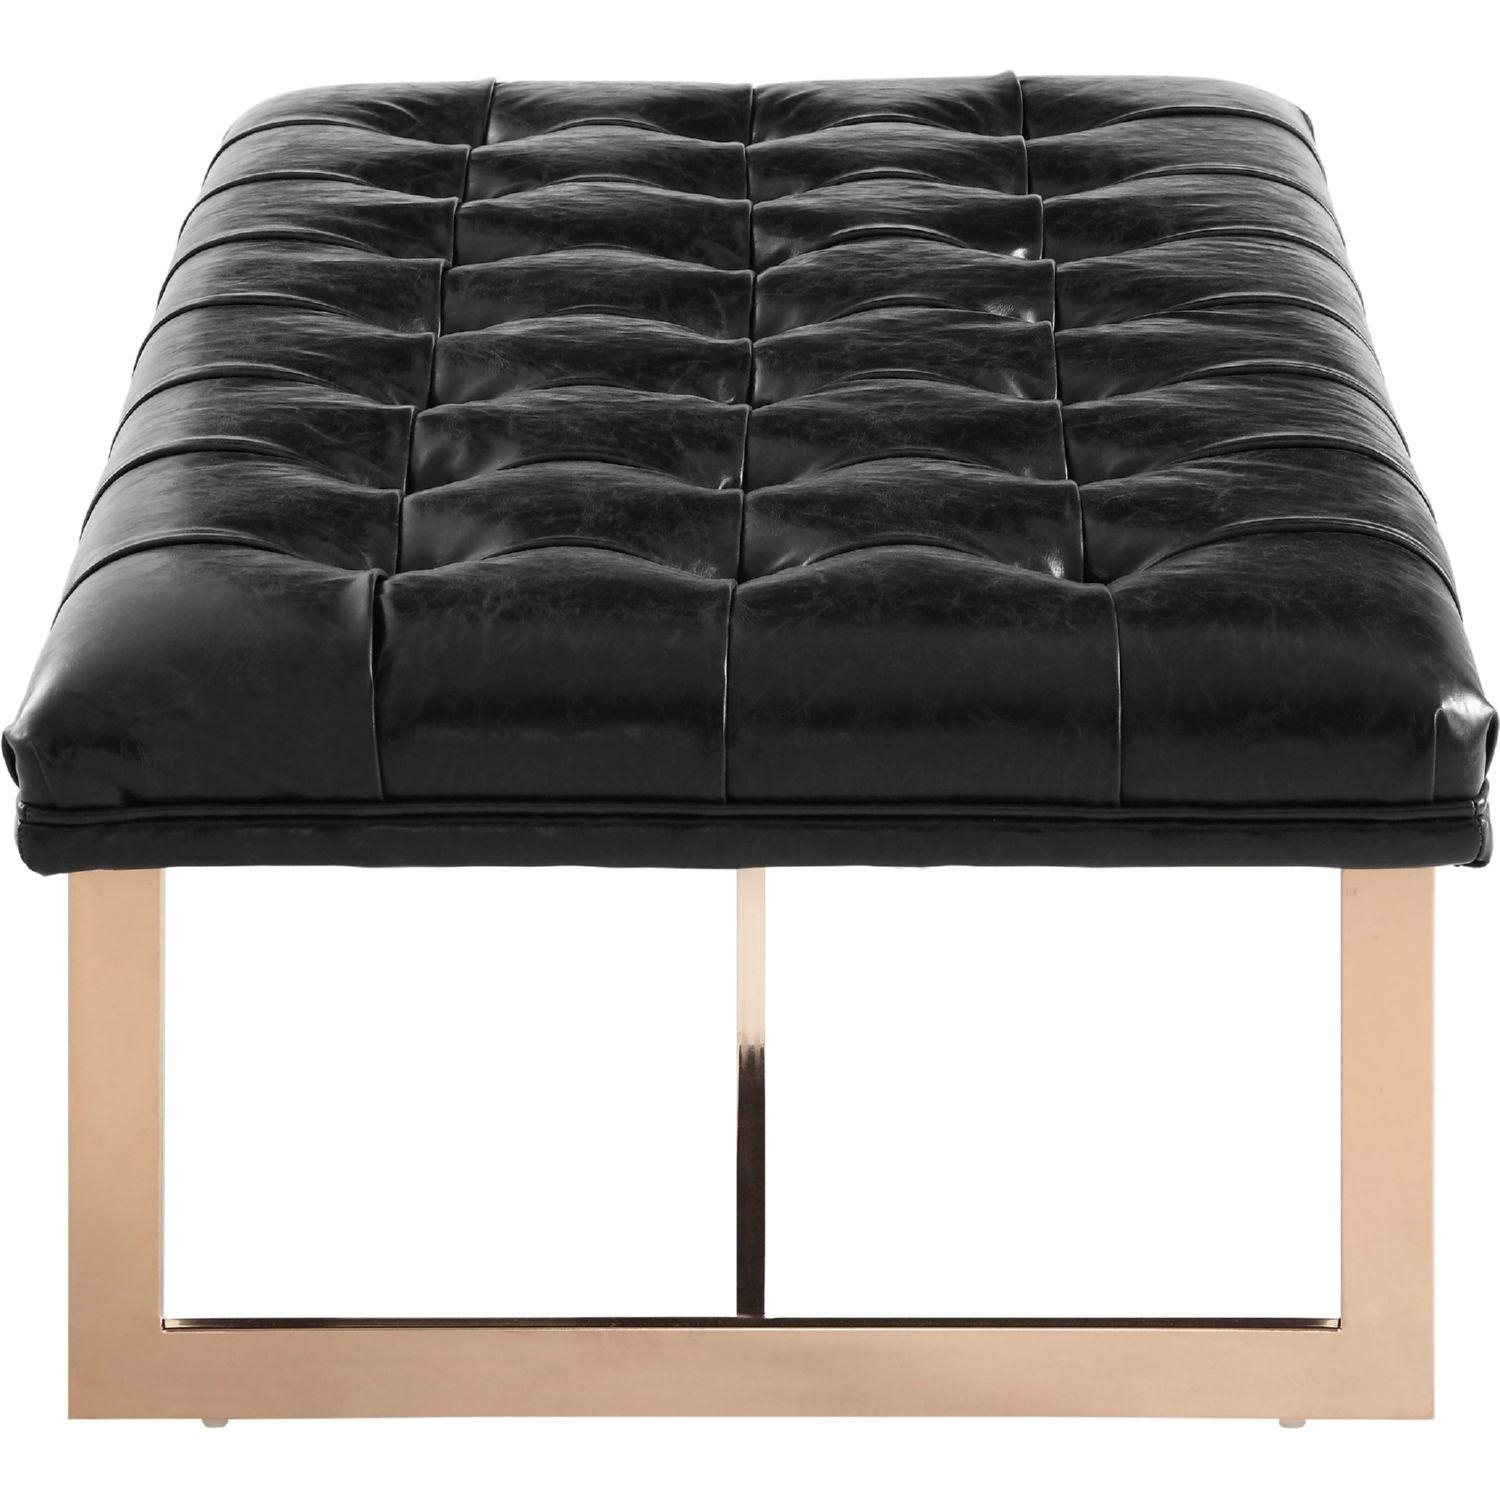 Tov Furniture Tov O53 Oppland Tufted Black Leather Bench W/ Gold Legs With Leather Bench Sofas (View 21 of 22)